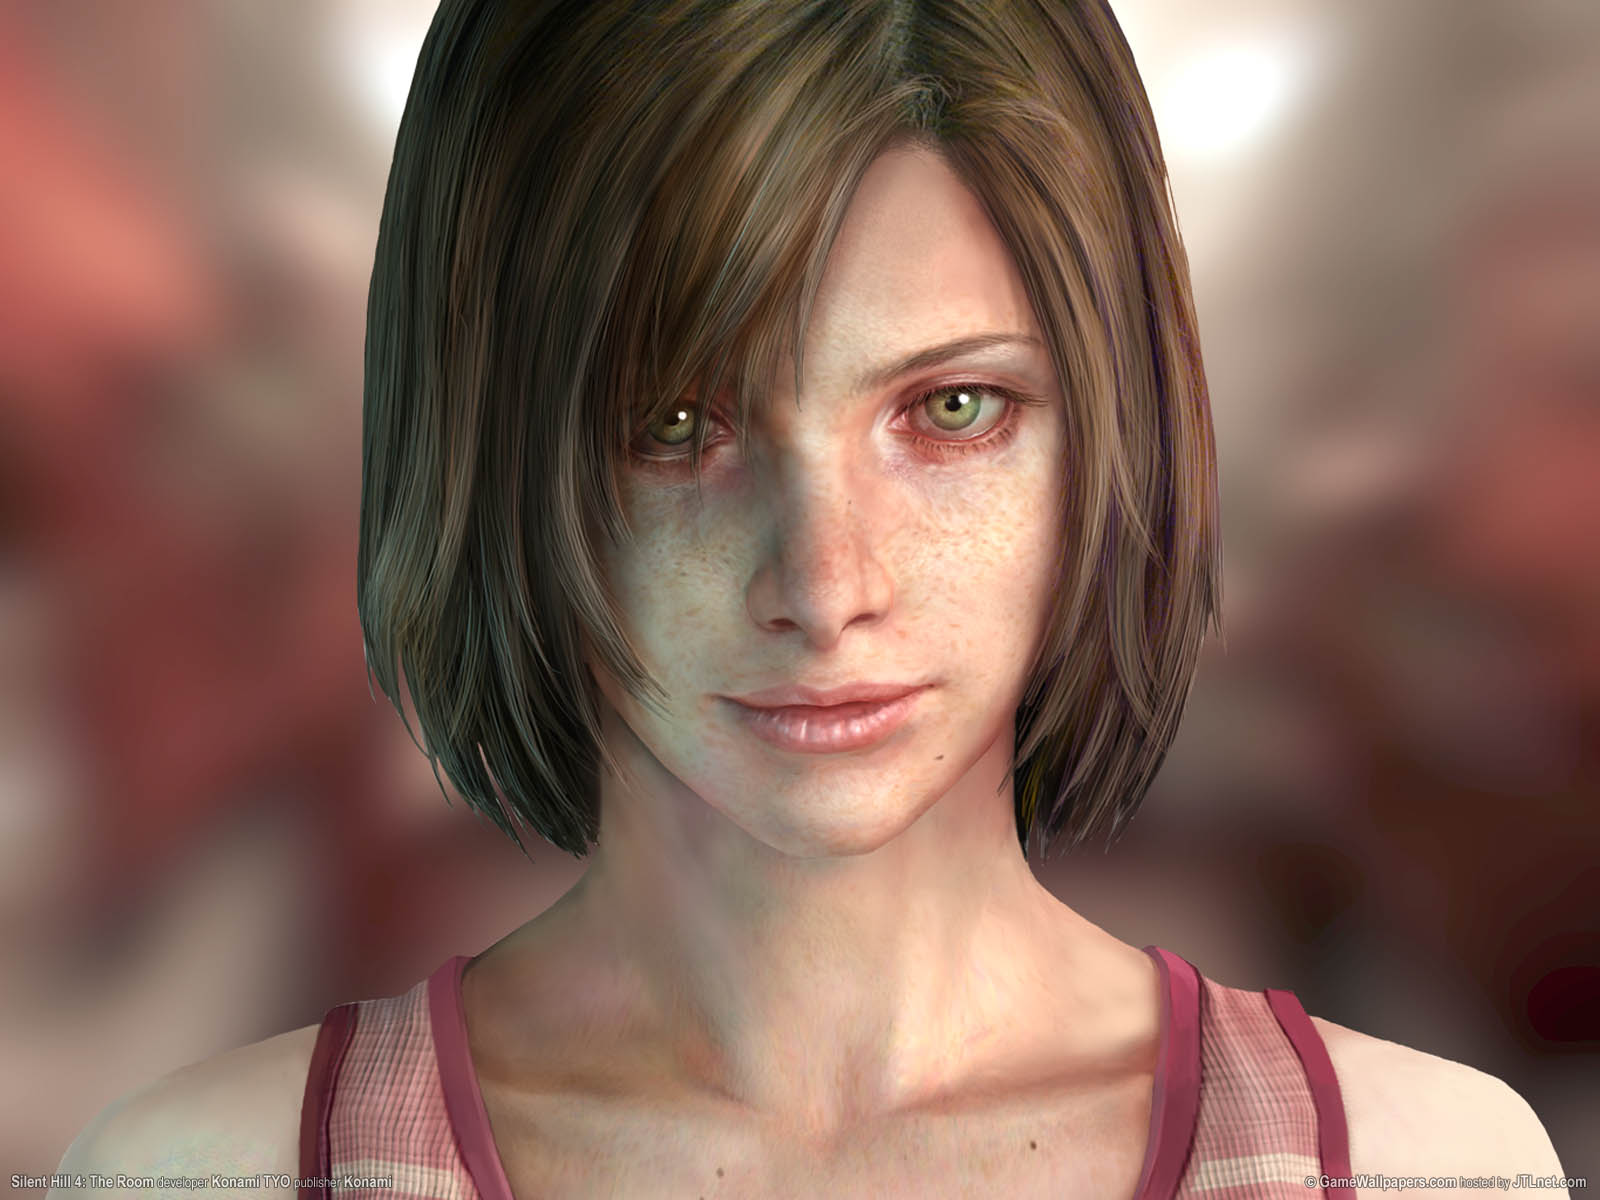 Silent Hill 4. (4. kep)